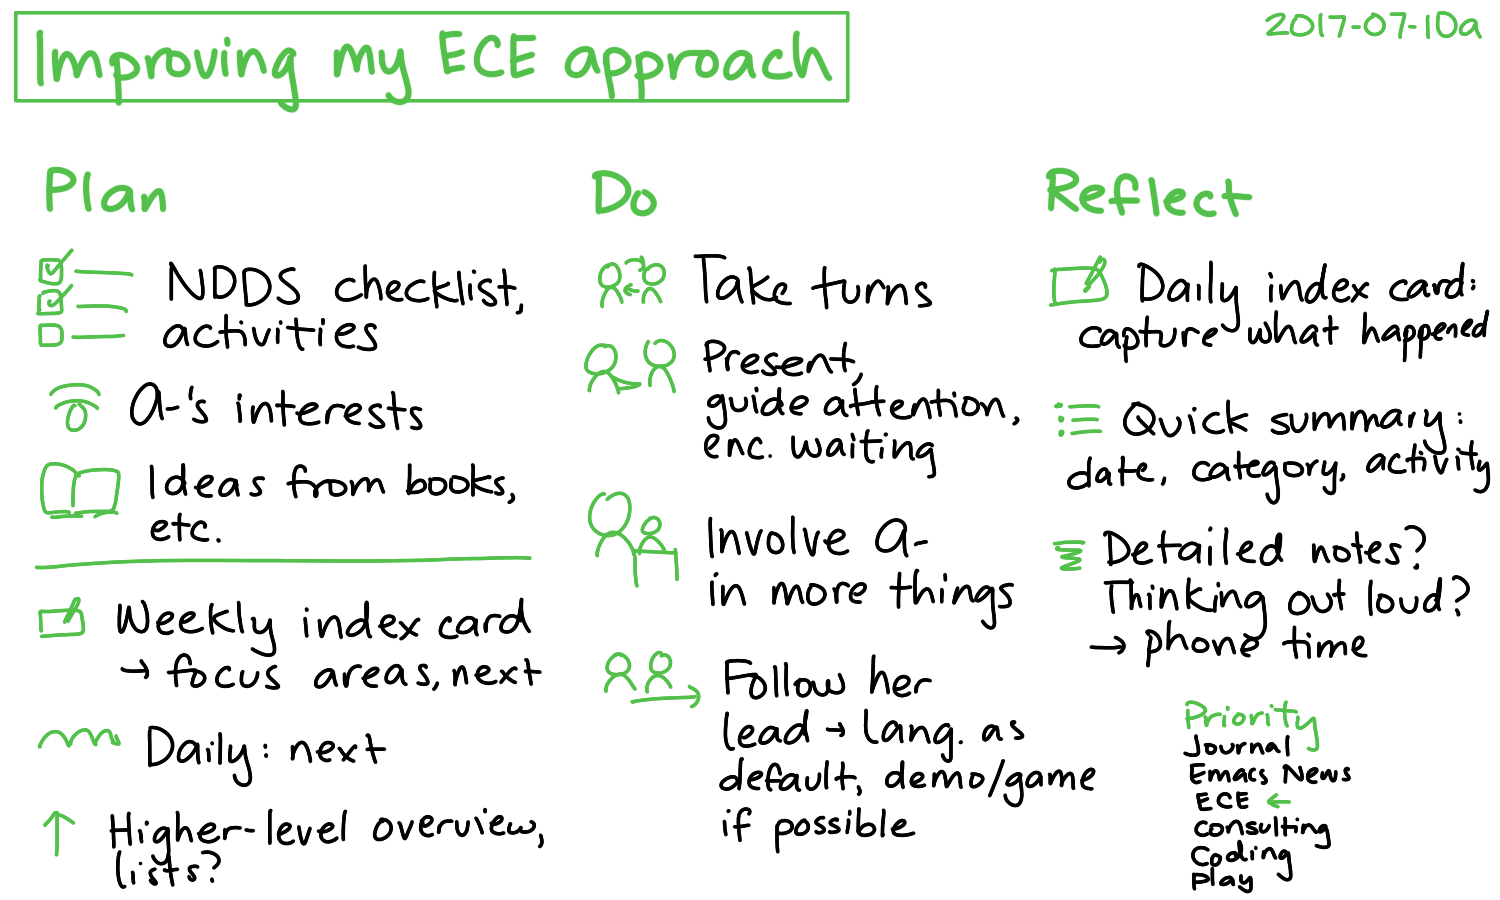 2017-07-10a Improving my ECE approach #parenting #ece.png